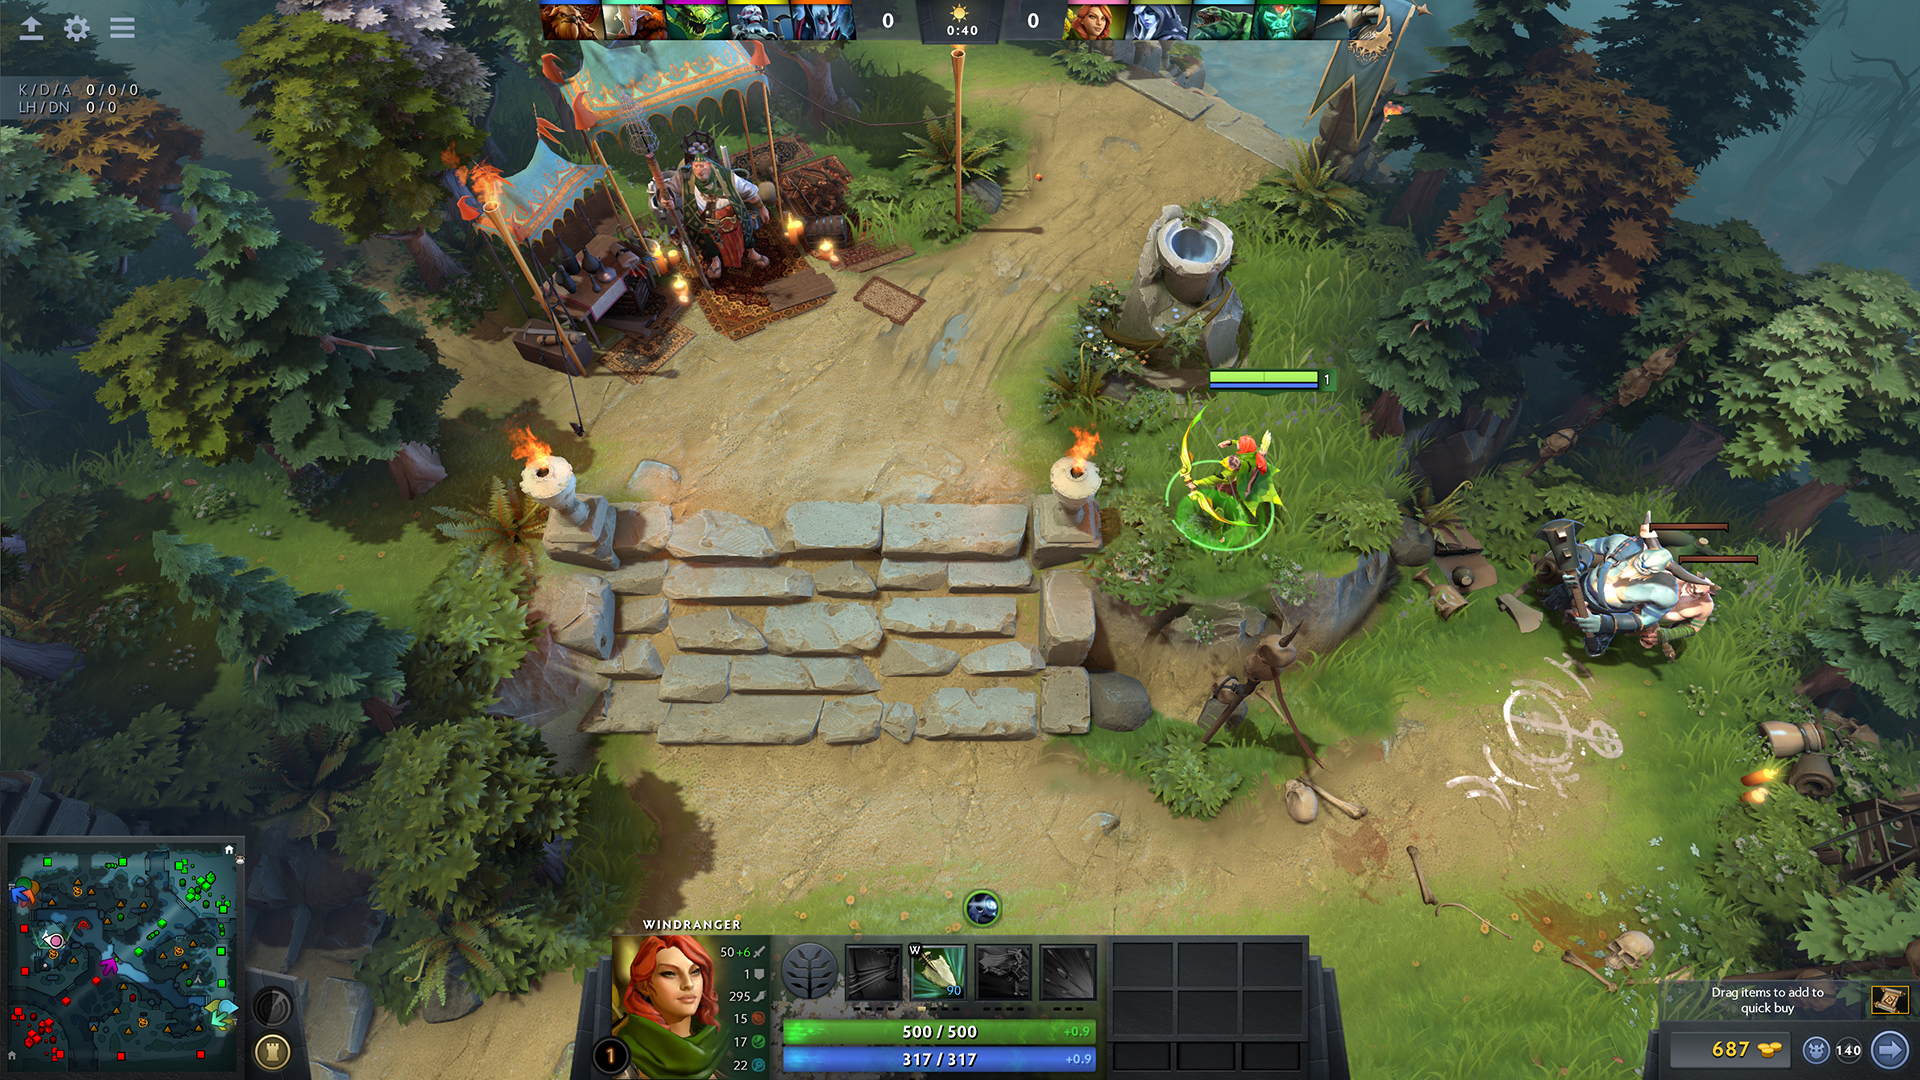 dota 2 download free full version for pc no steam